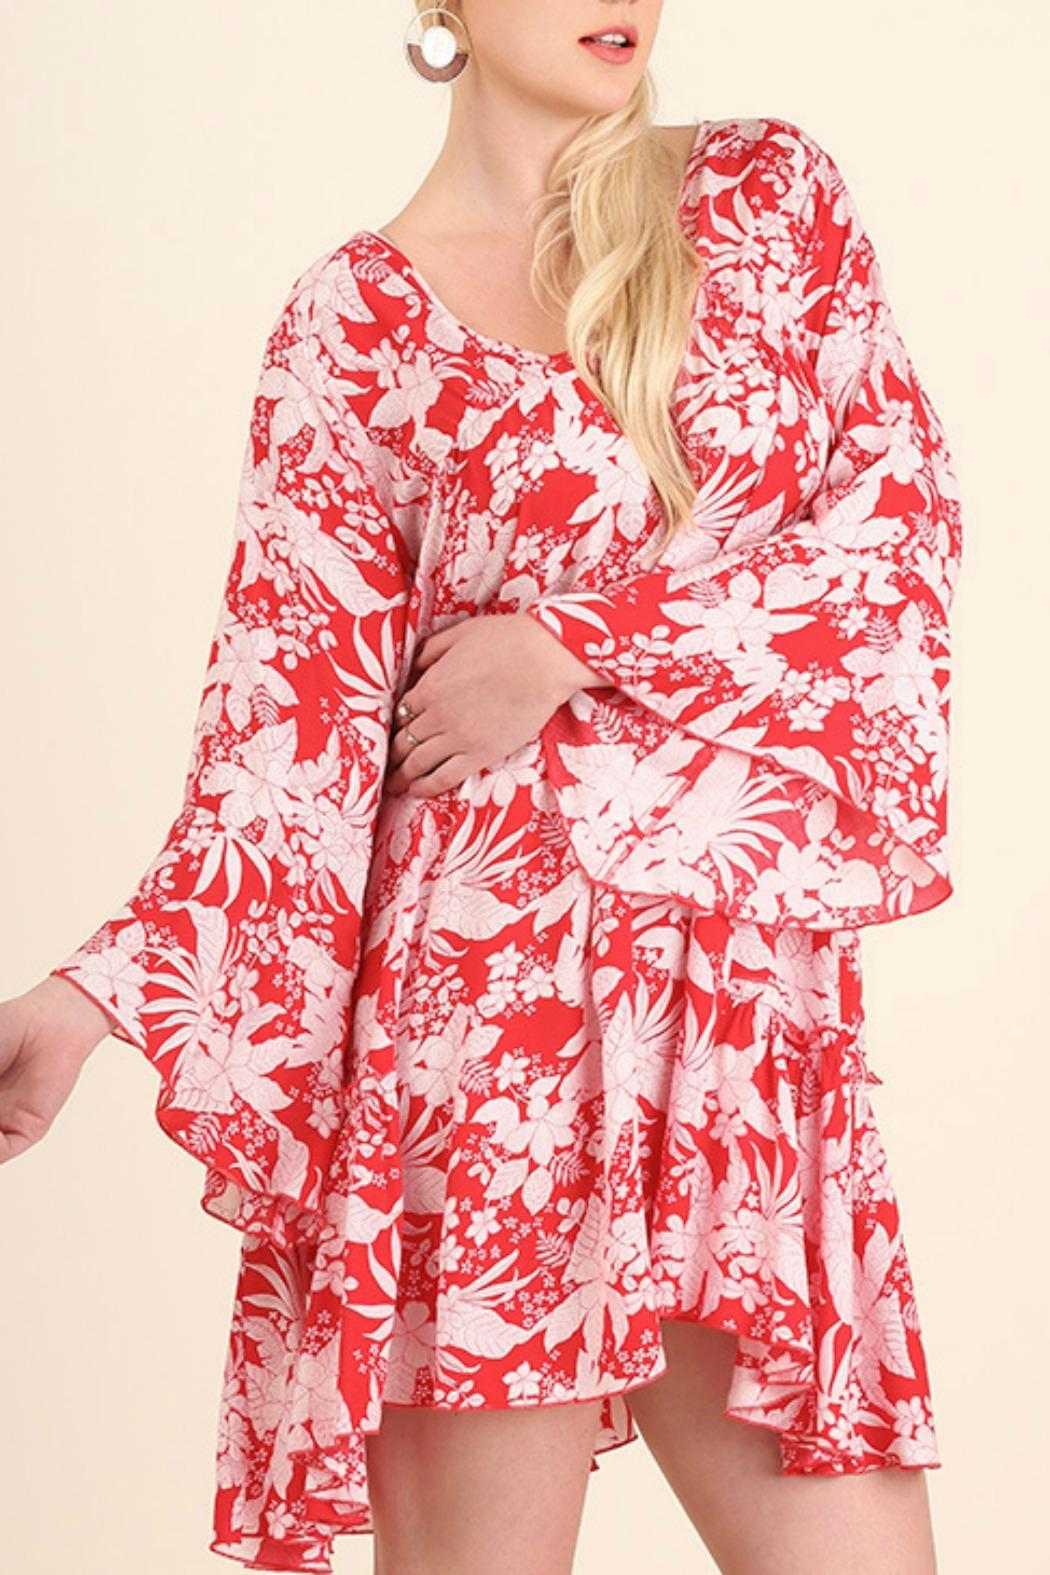 Umgee USA Floral Bell Sleeve Dress - Main Image